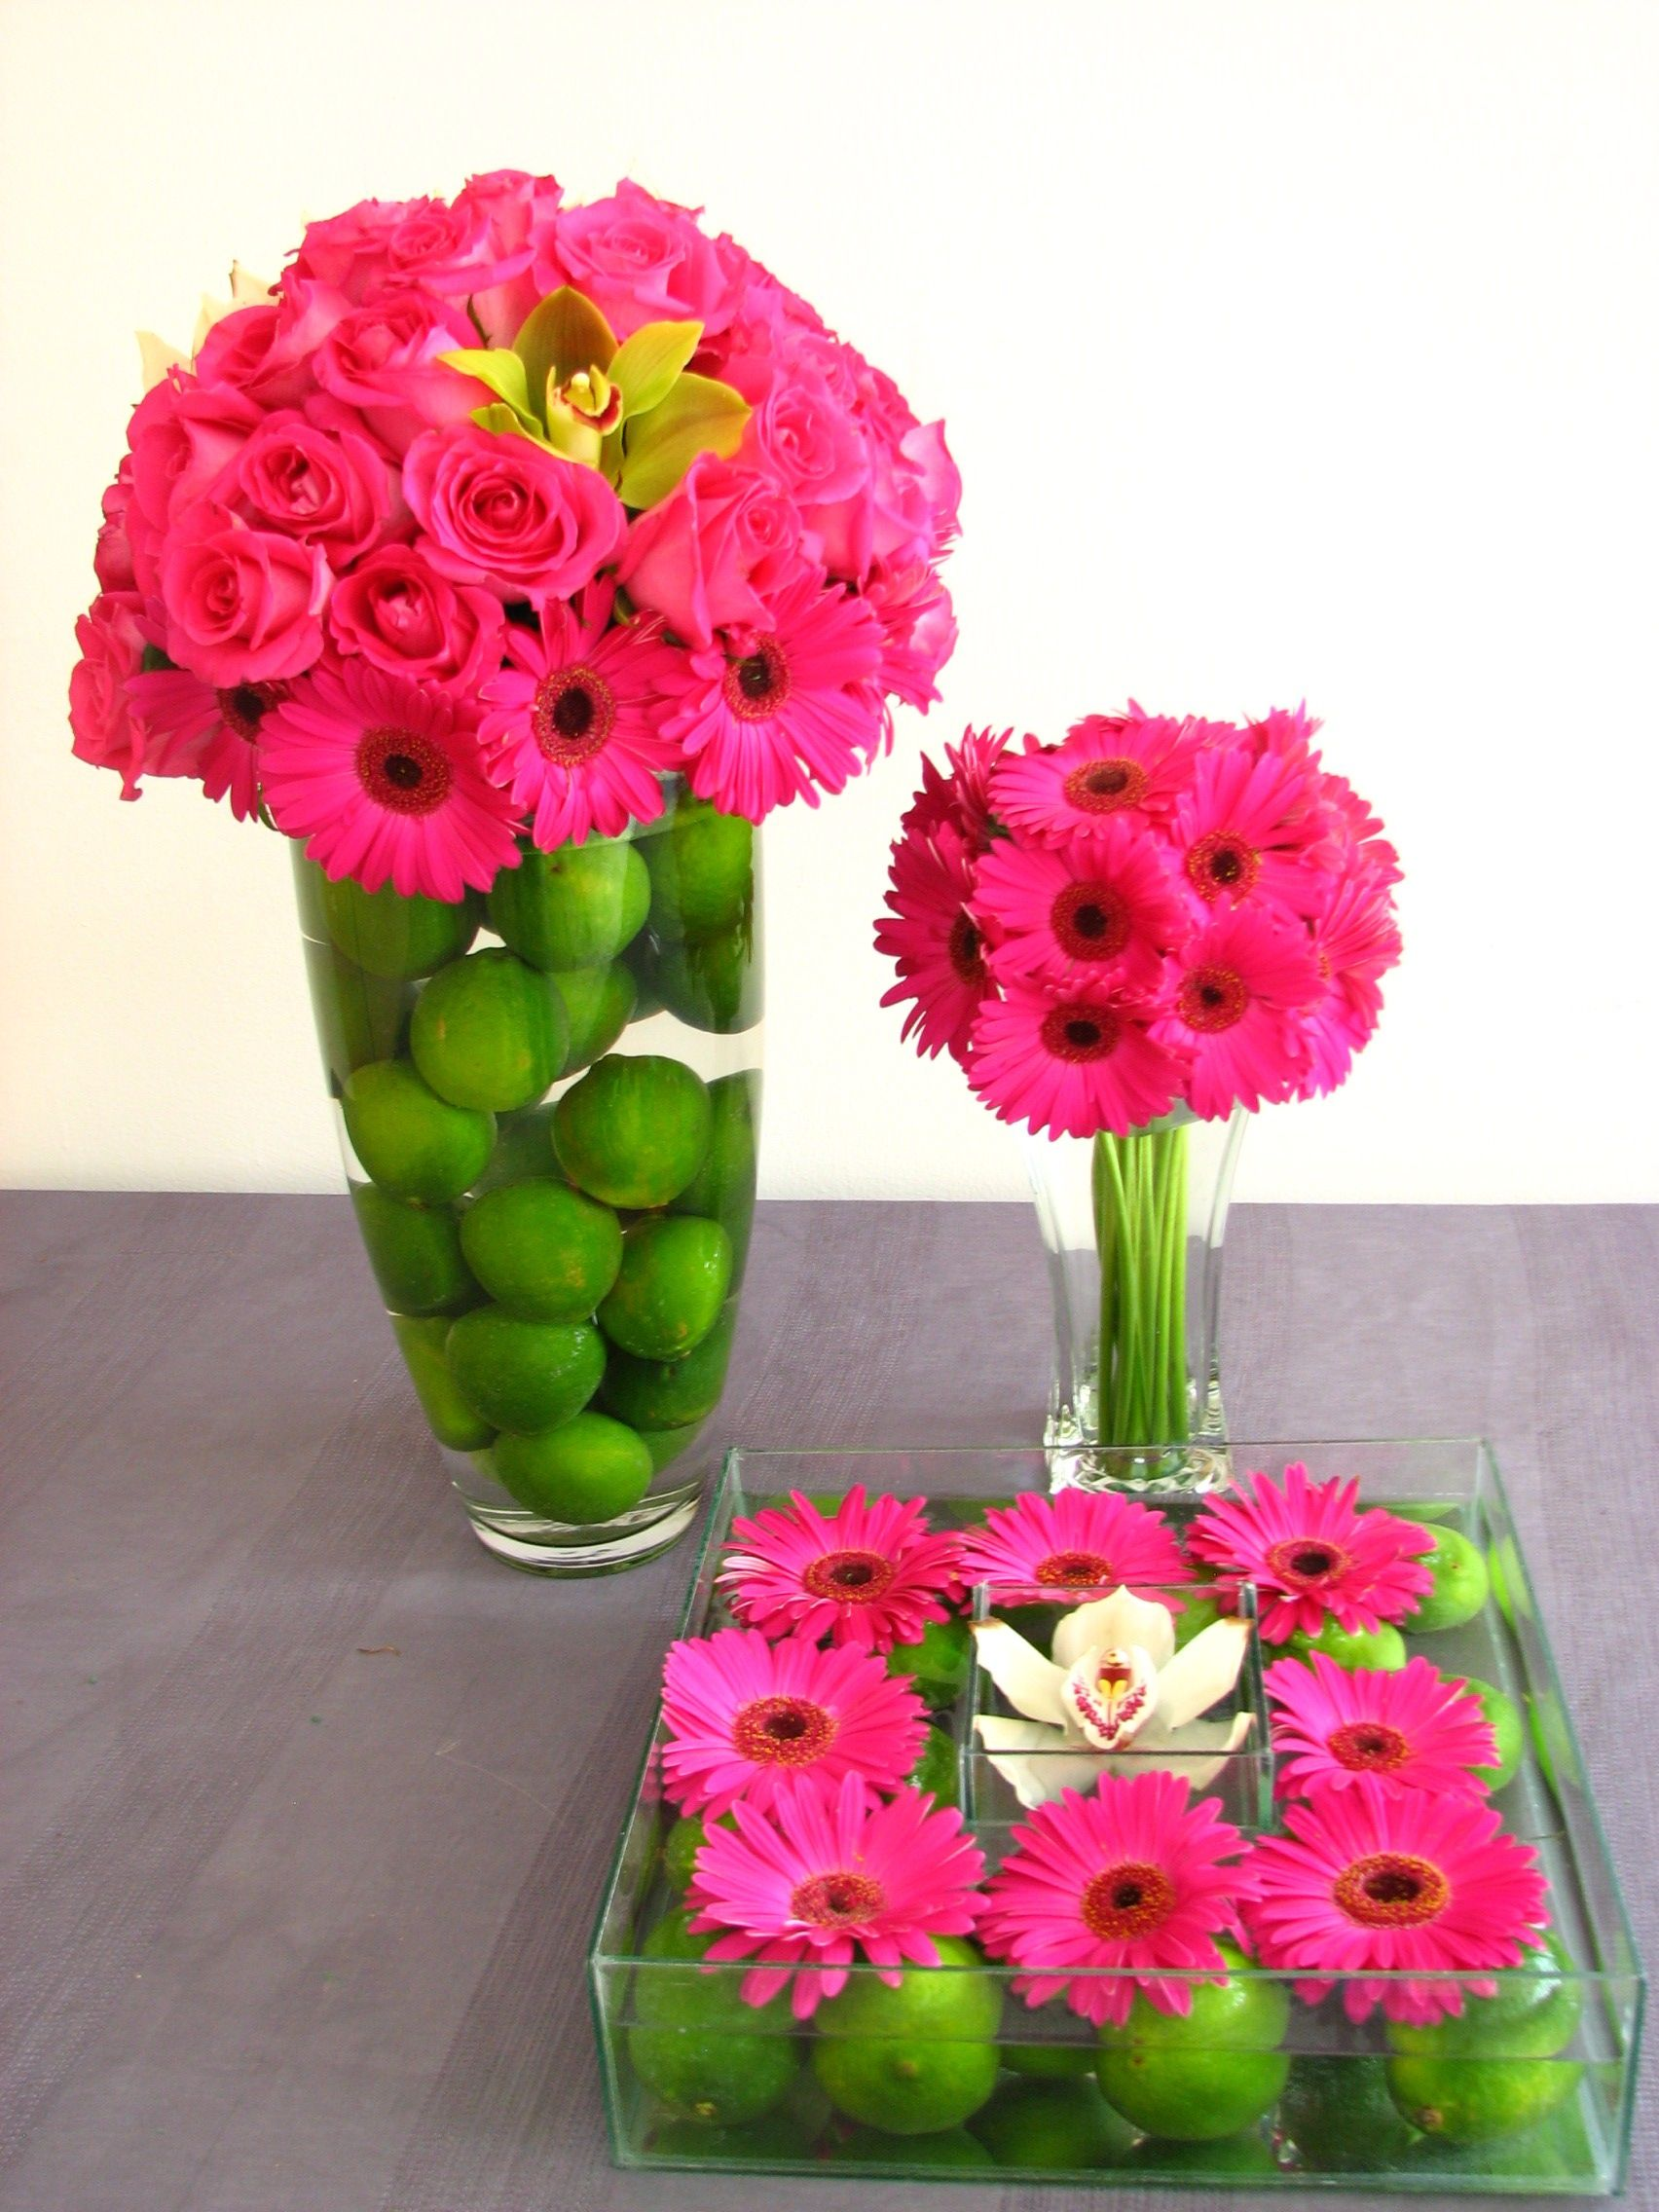 Green Lime Pink Flower Table Displays And Centerpieces For A Bright Cheerful Wedding Or Party Theme With Lemons